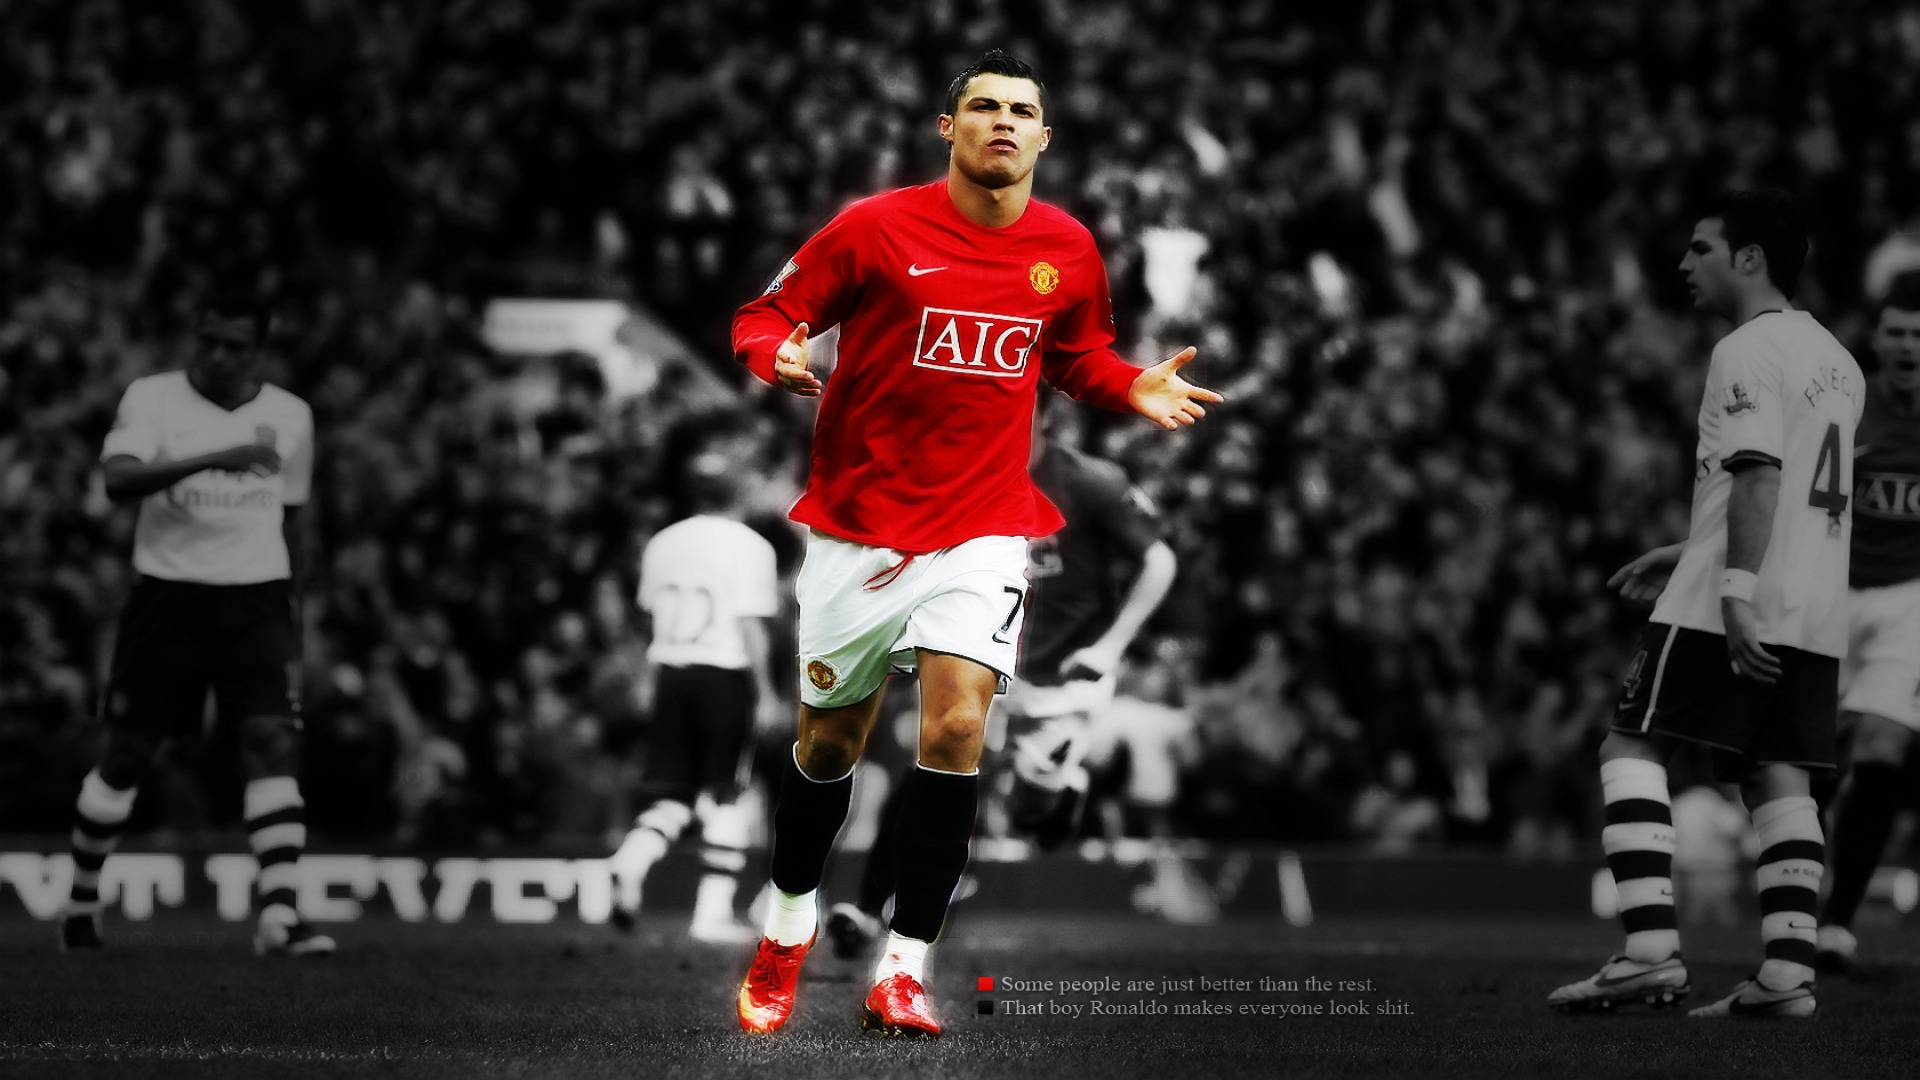 Cristiano Ronaldo Wallpaper Football Sports Wallpapers